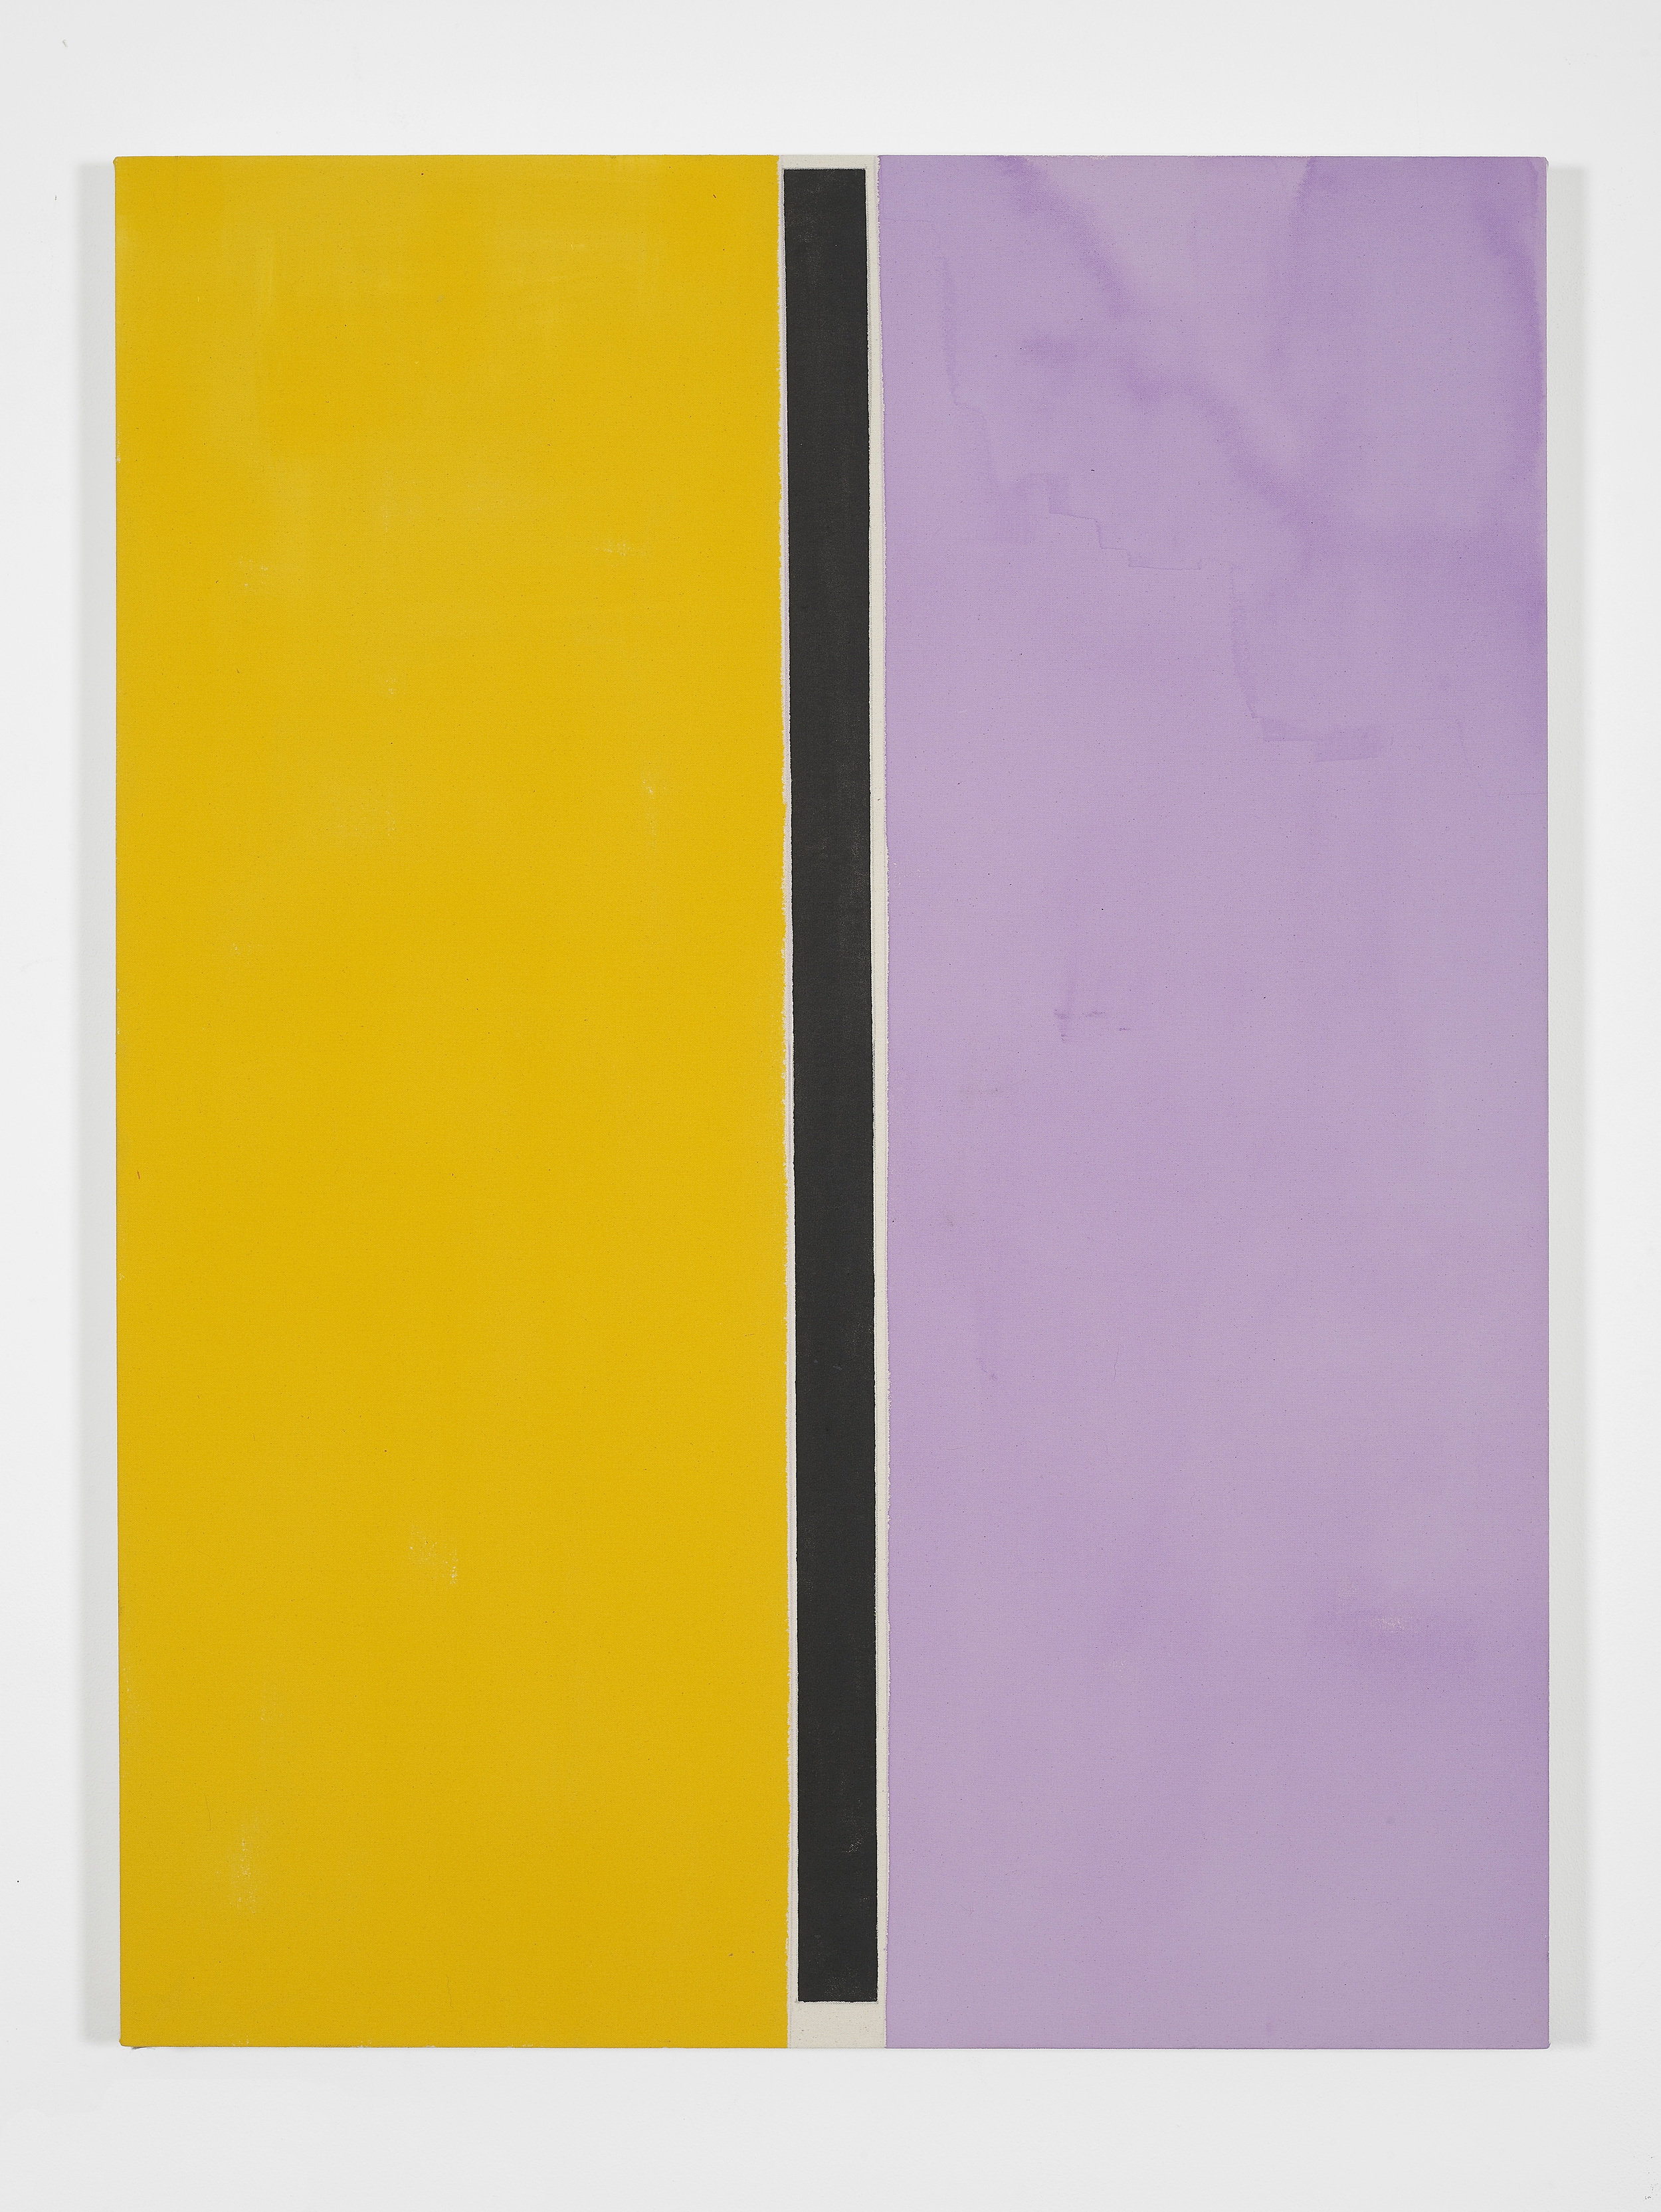 Matt Connors Divot 2012 Acrylic and pencil on canvas 122 x 92 cm / 48 x 36 in